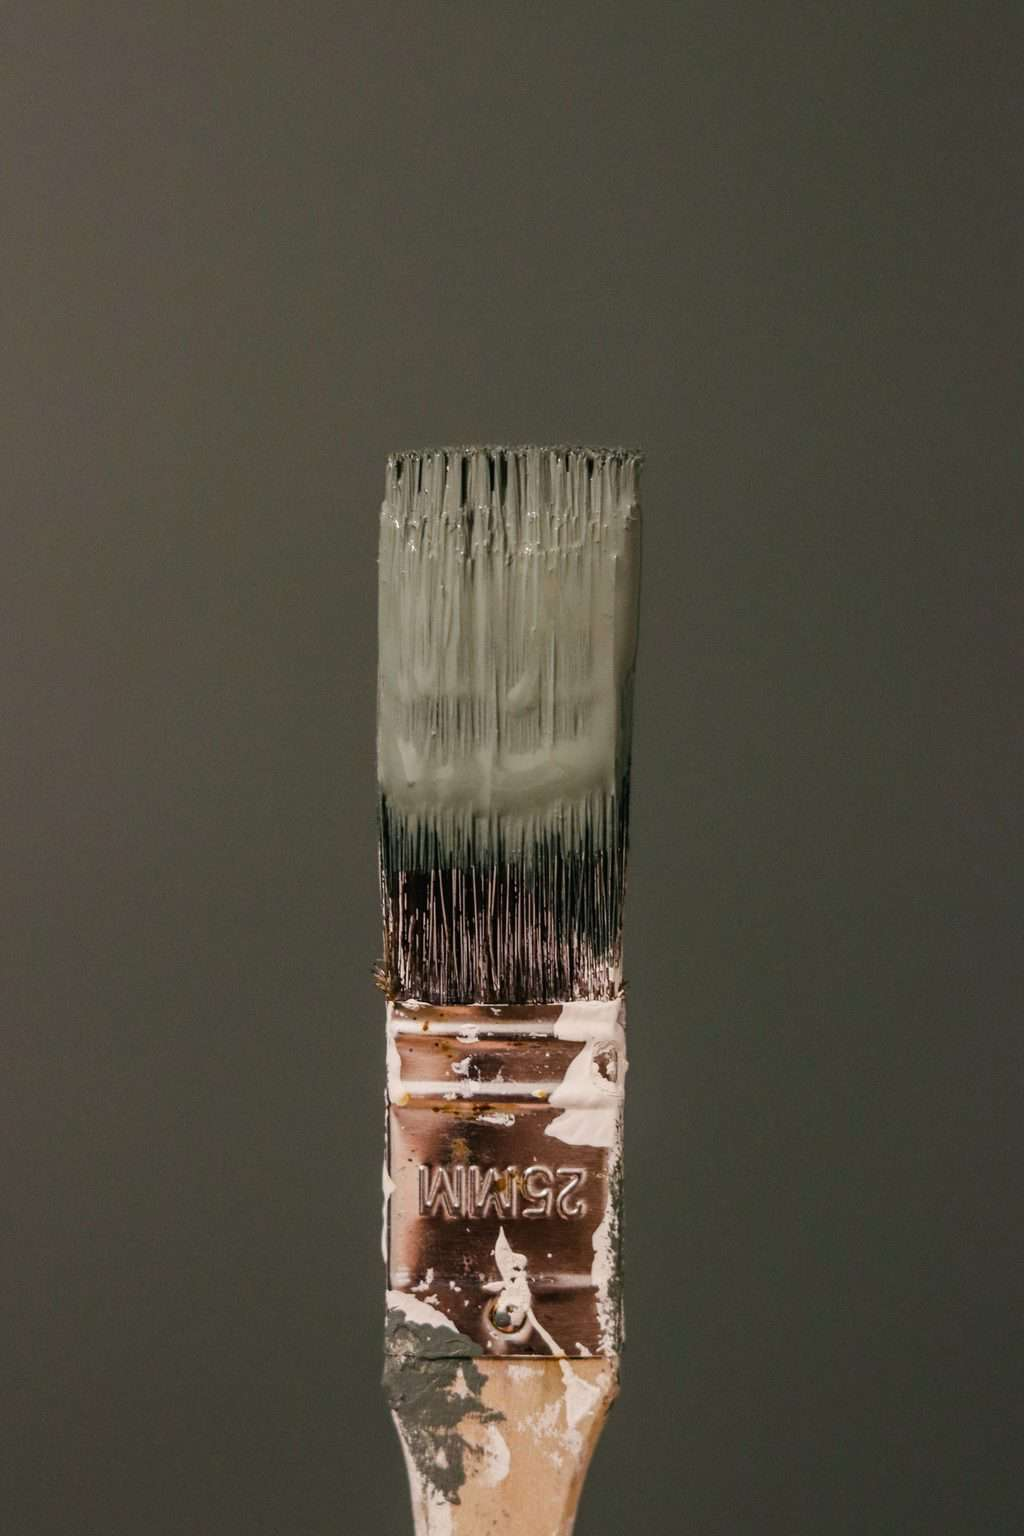 Tired of brushstrokes when you paint furniture? Here are 3 easy tips for getting rid of brush strokes when painting furniture every time.